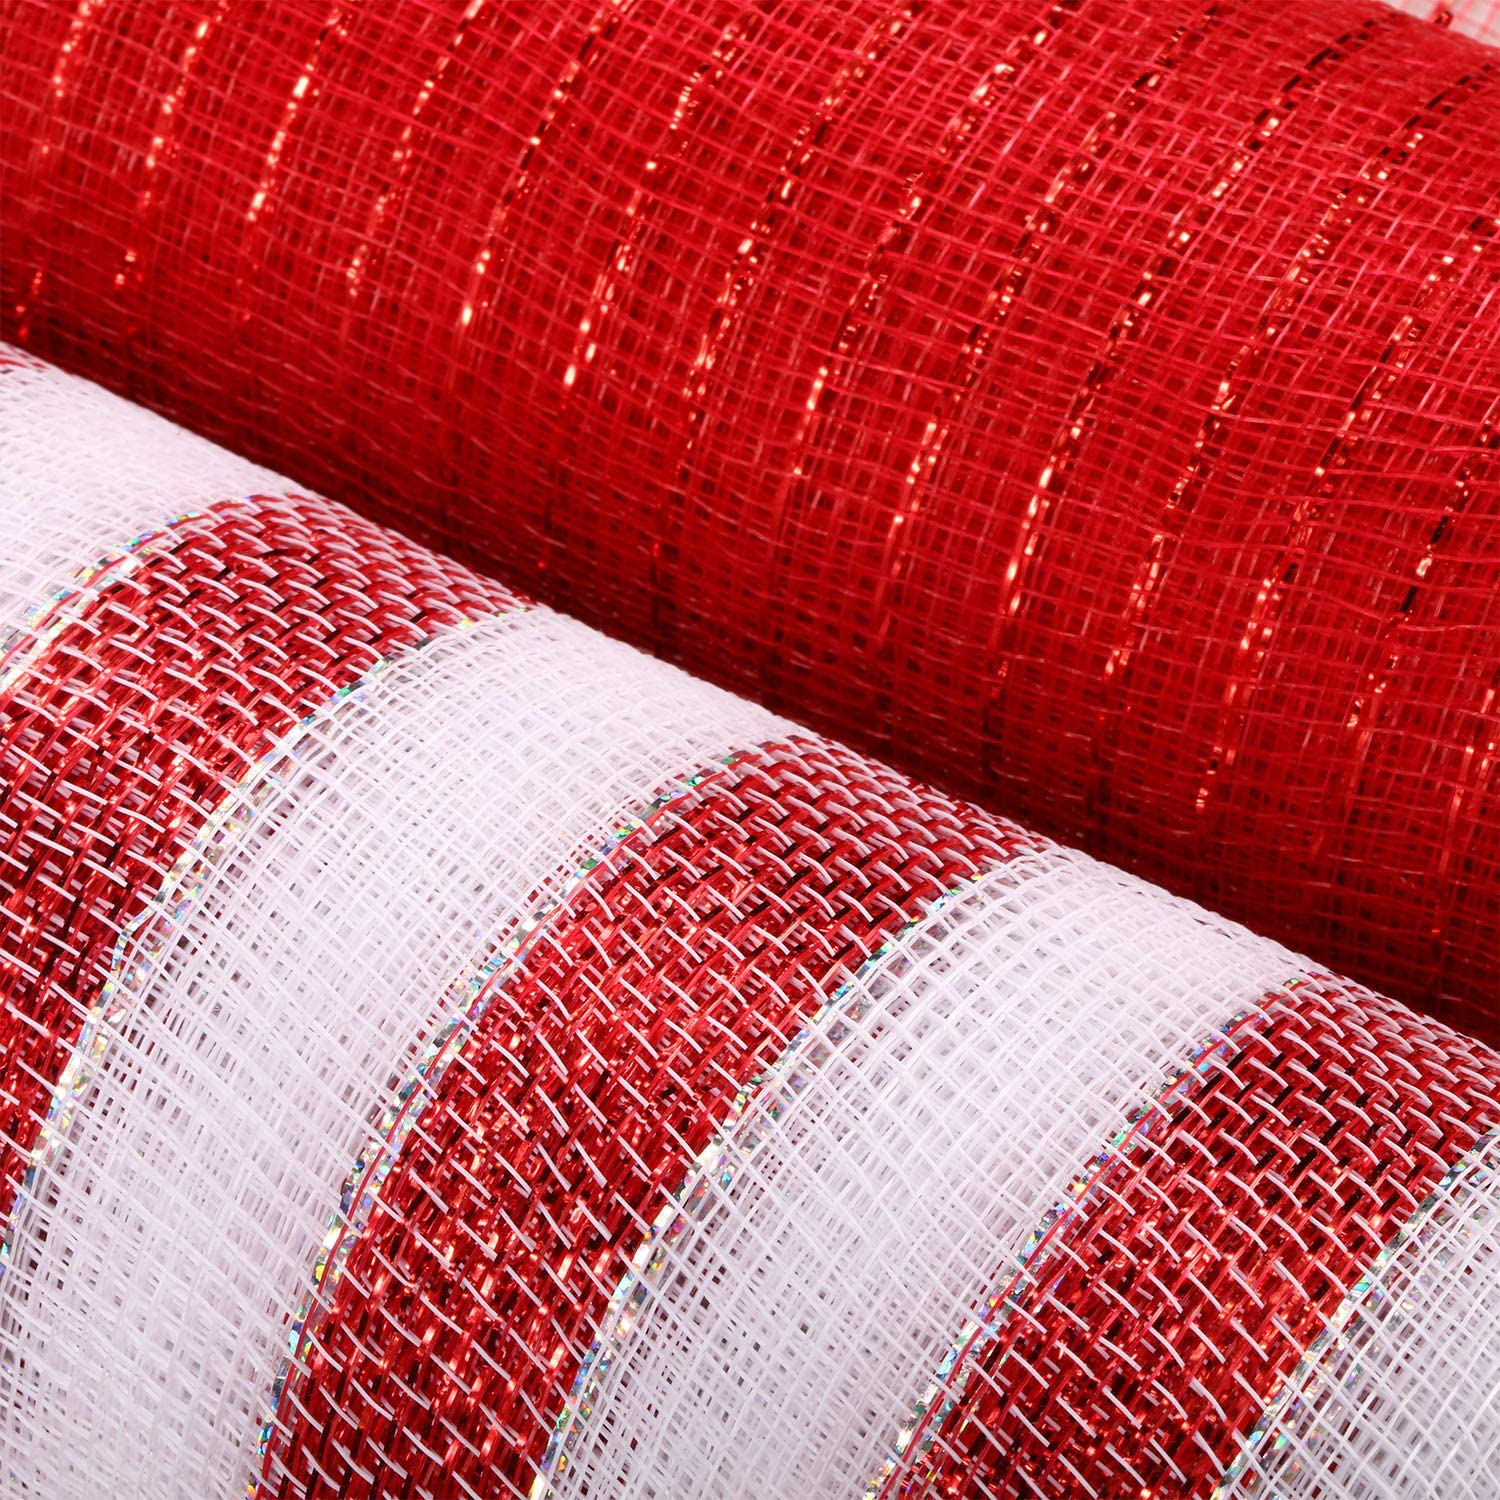 2 Pack Metallic Decor Poly Mesh Ribbon of 10 Inch x 30 Feet Each Roll for Christmas Wreaths Swags and Christmas Tree Decorating Metallic Foil Red and White Rolls, Red Foil